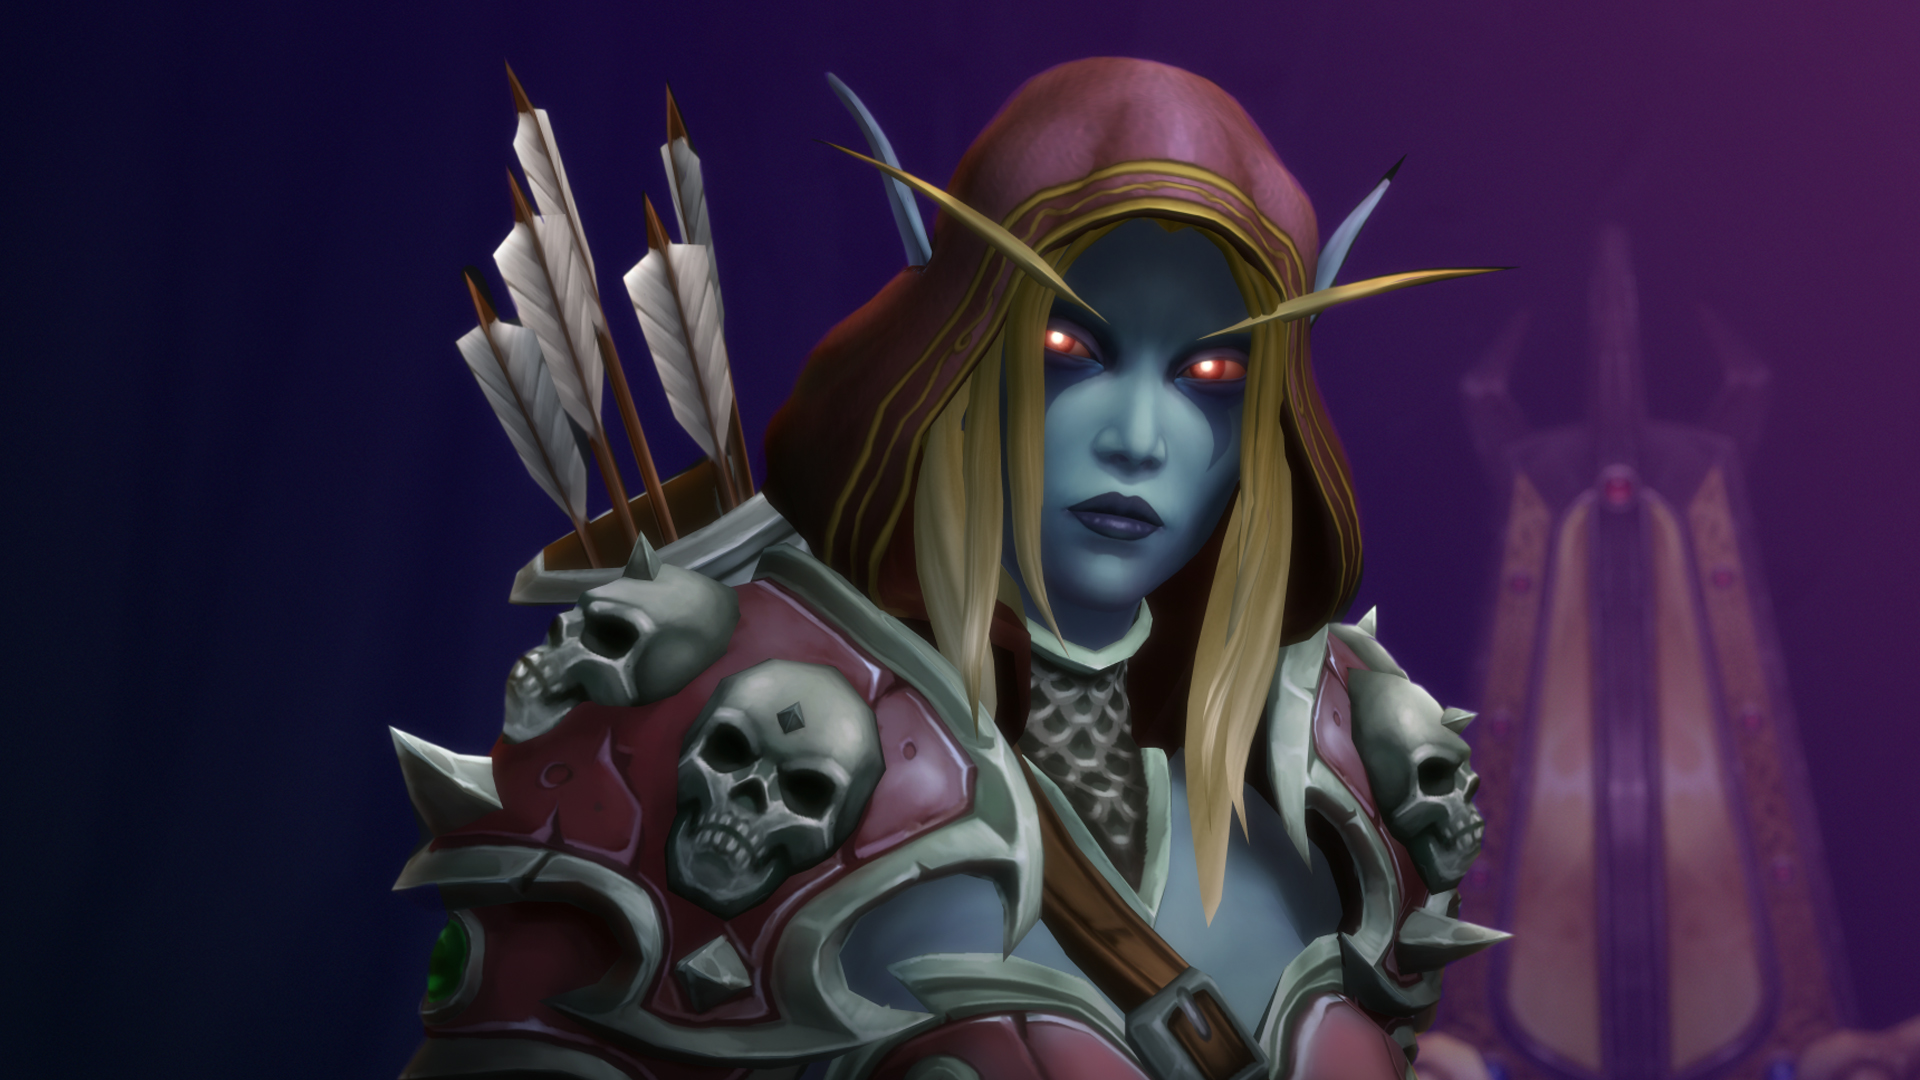 Character from the World of Warcraft game